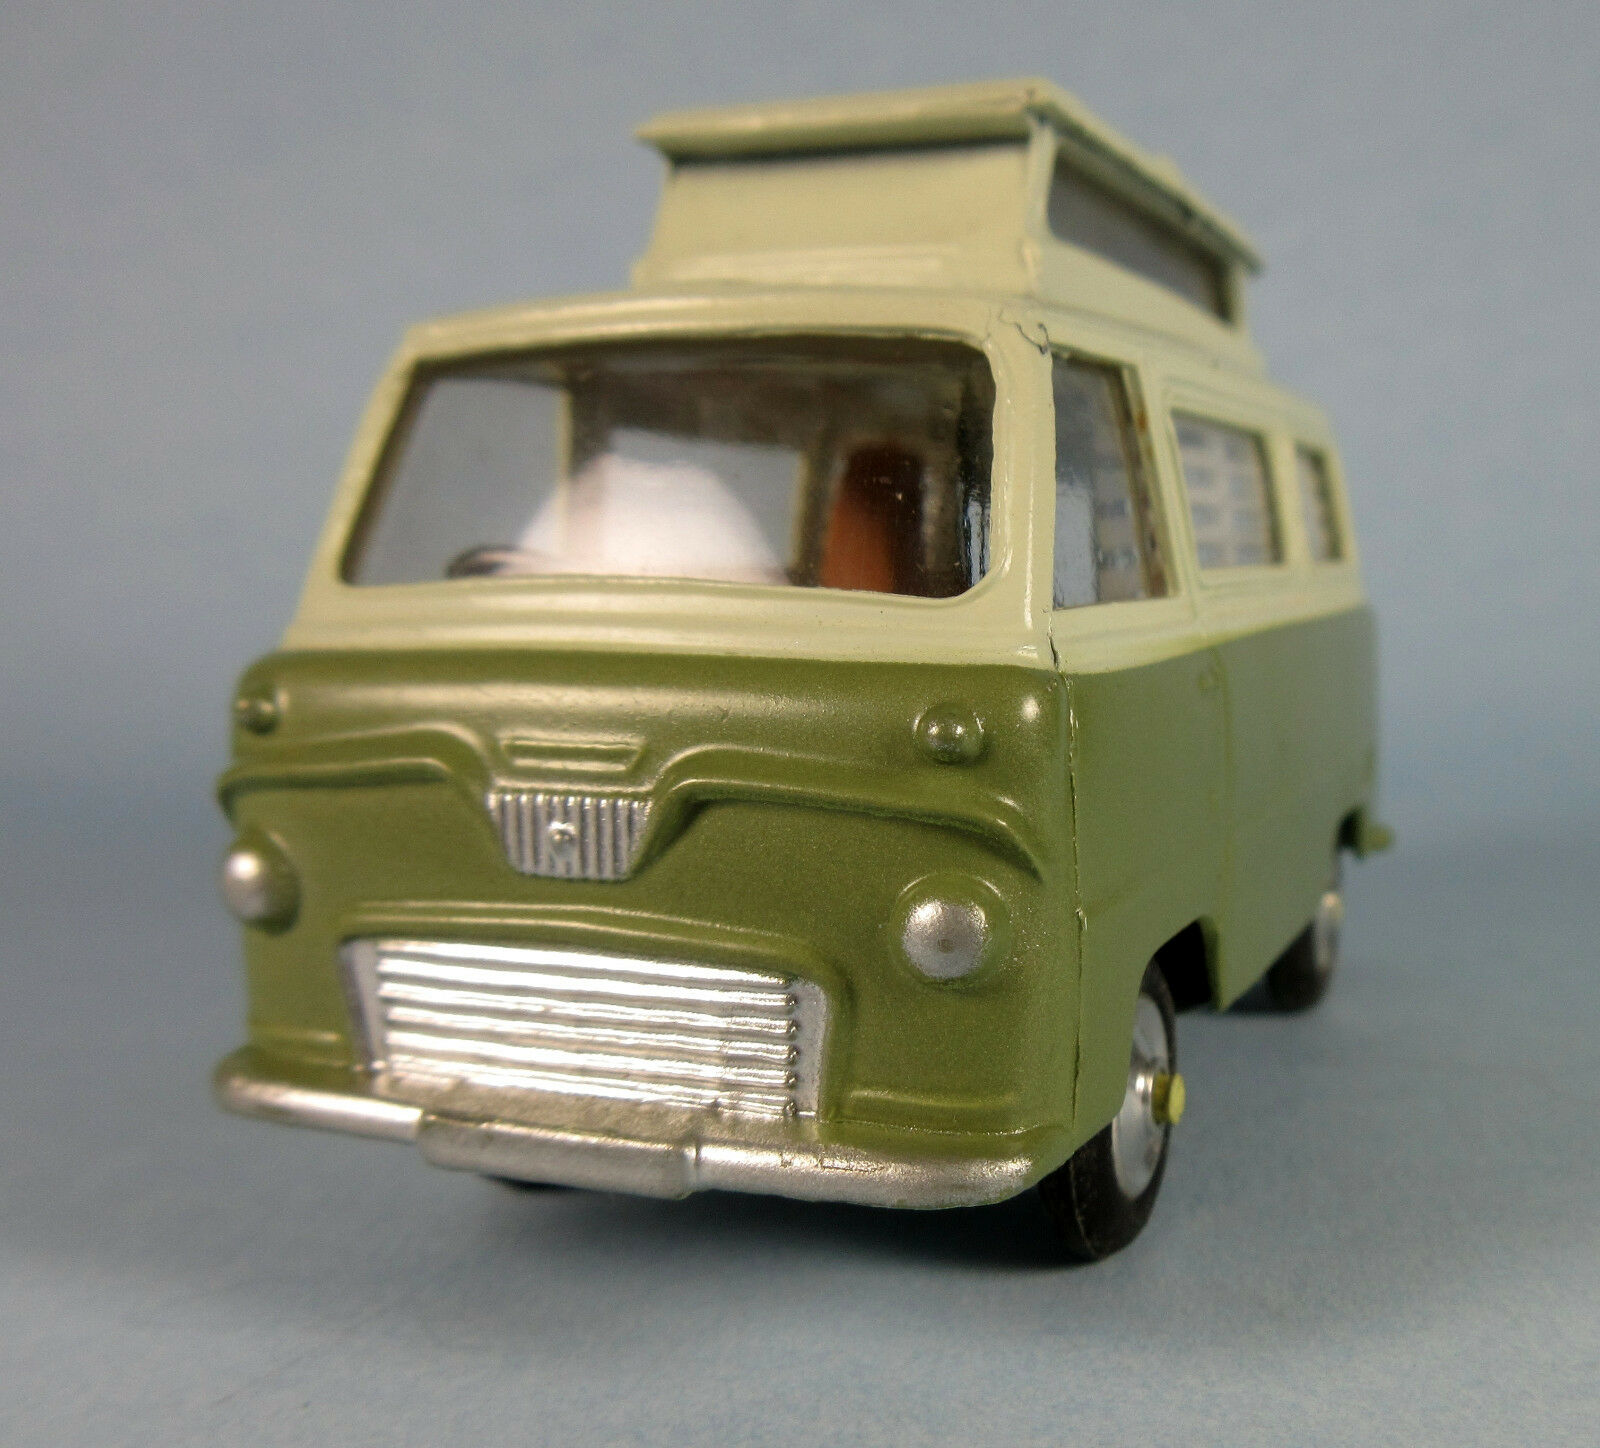 CORGI Ford Thames Caravan No. 420 (Green) 1 43 Scale Diecast Model NEW, RARE